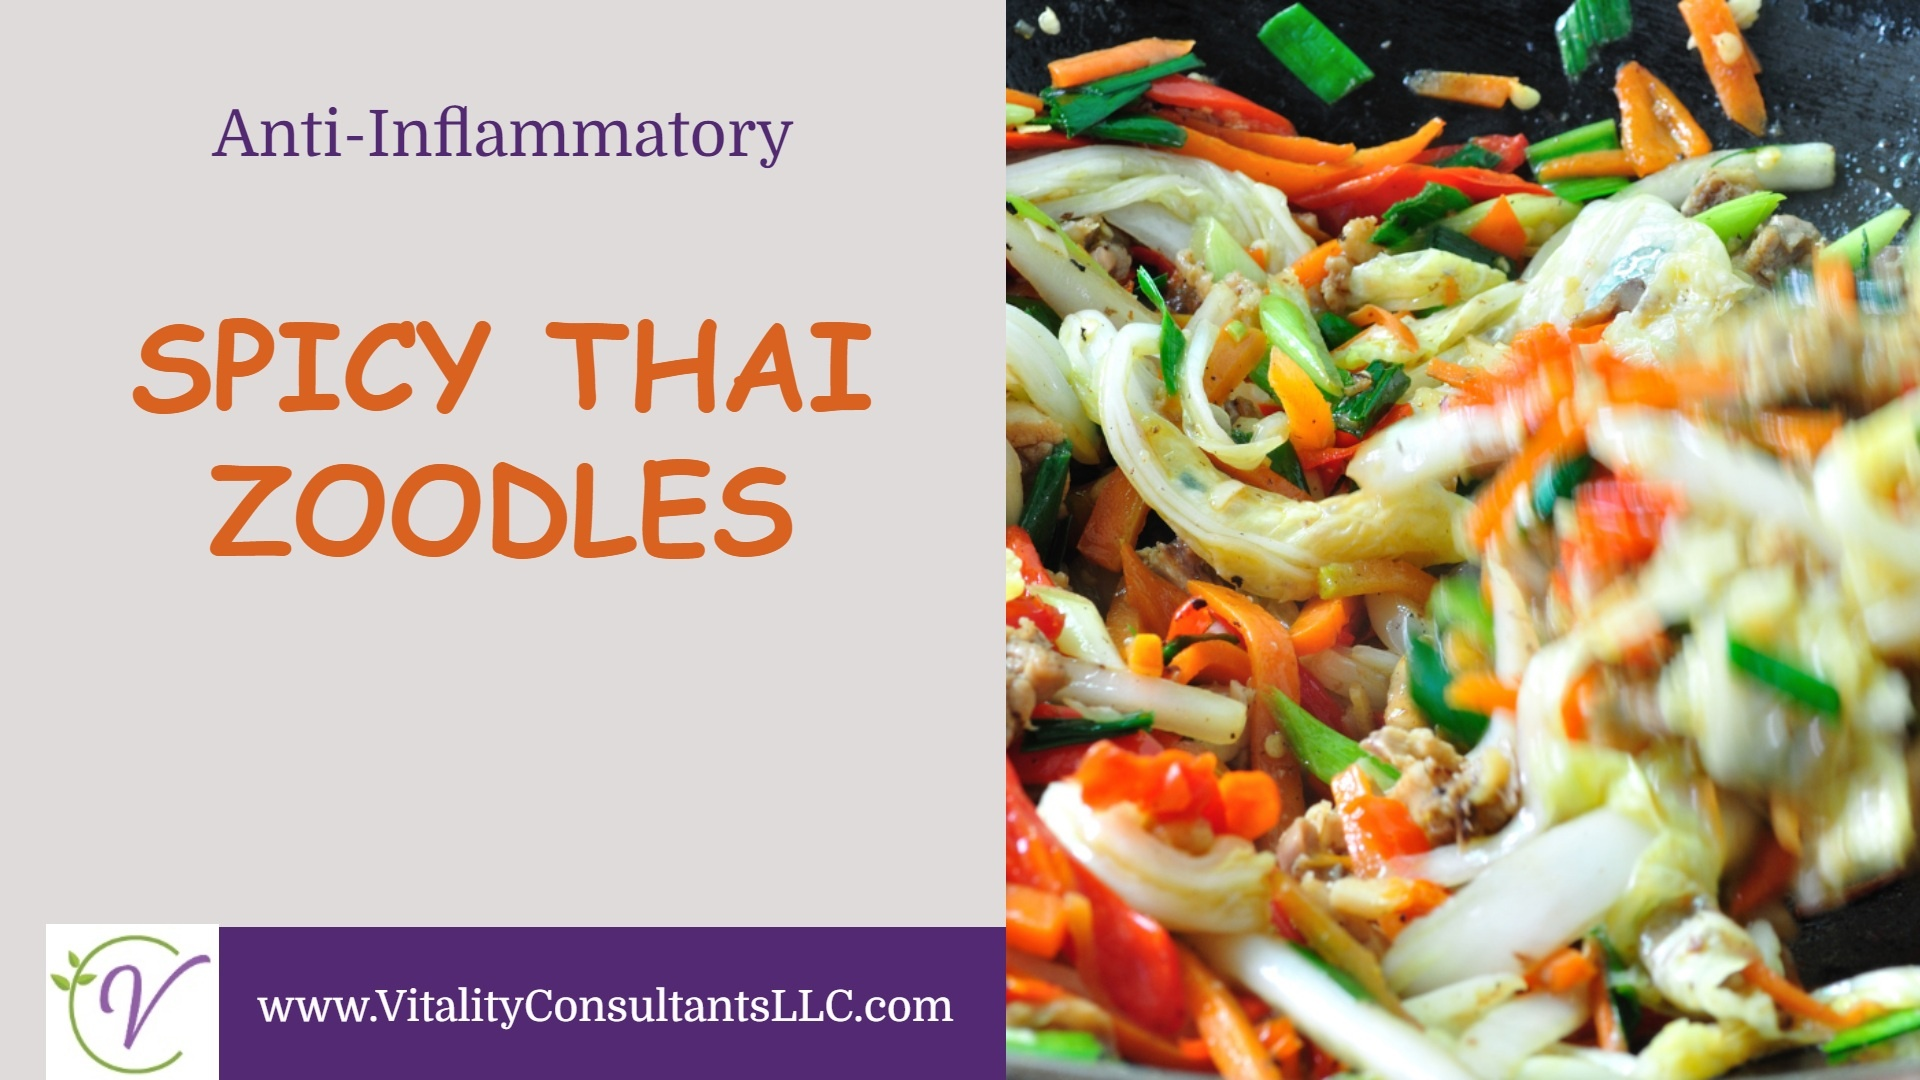 Spicy Thai Zoodles